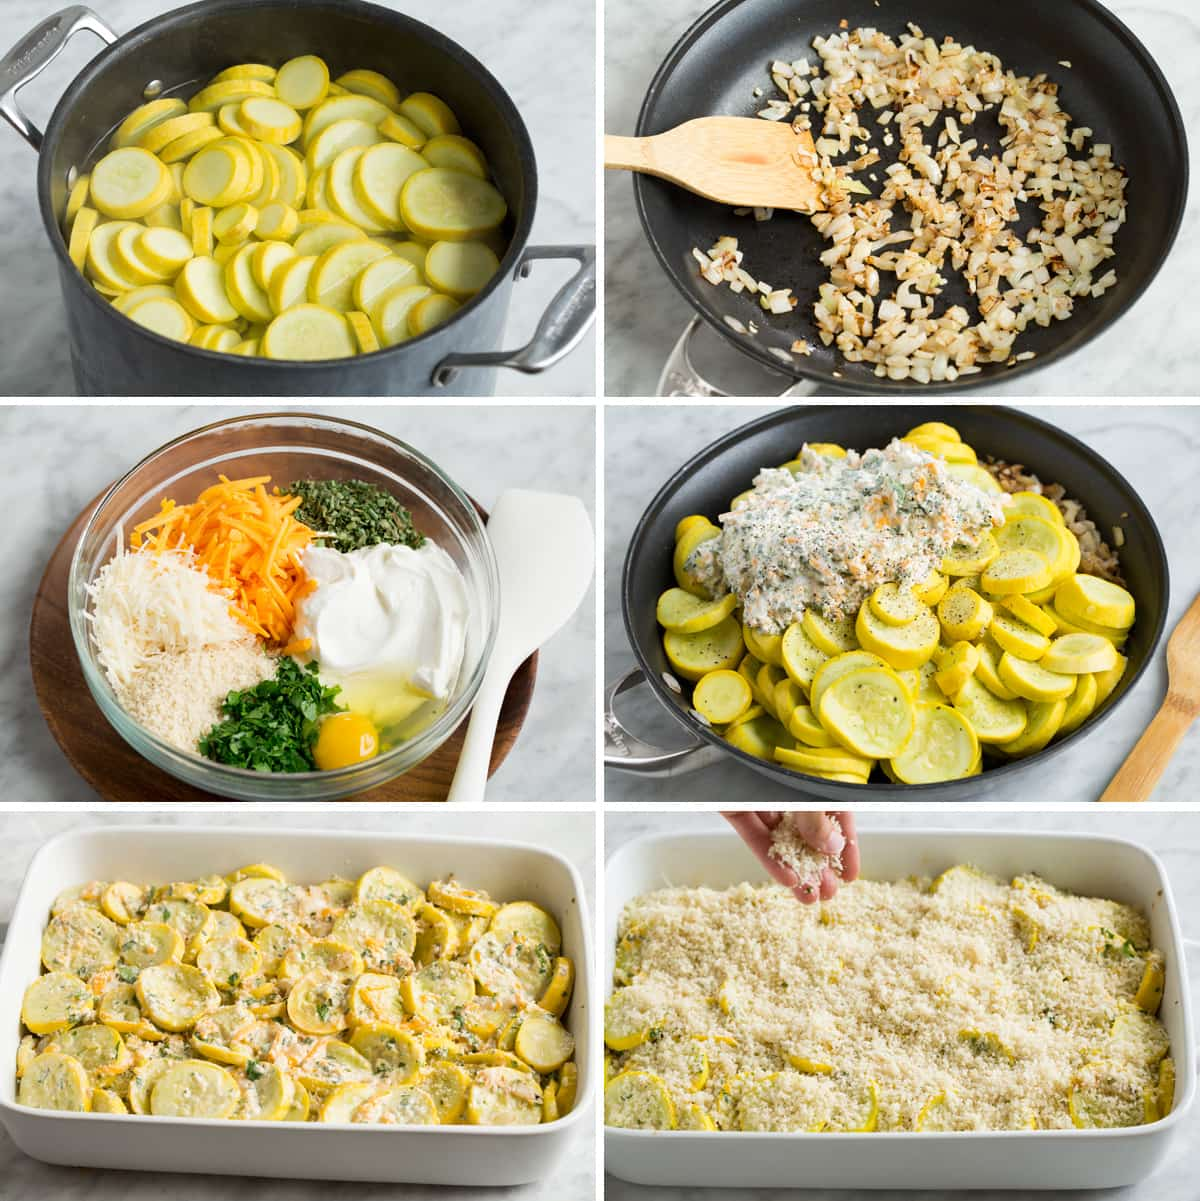 Steps showing how to make squash casserole.